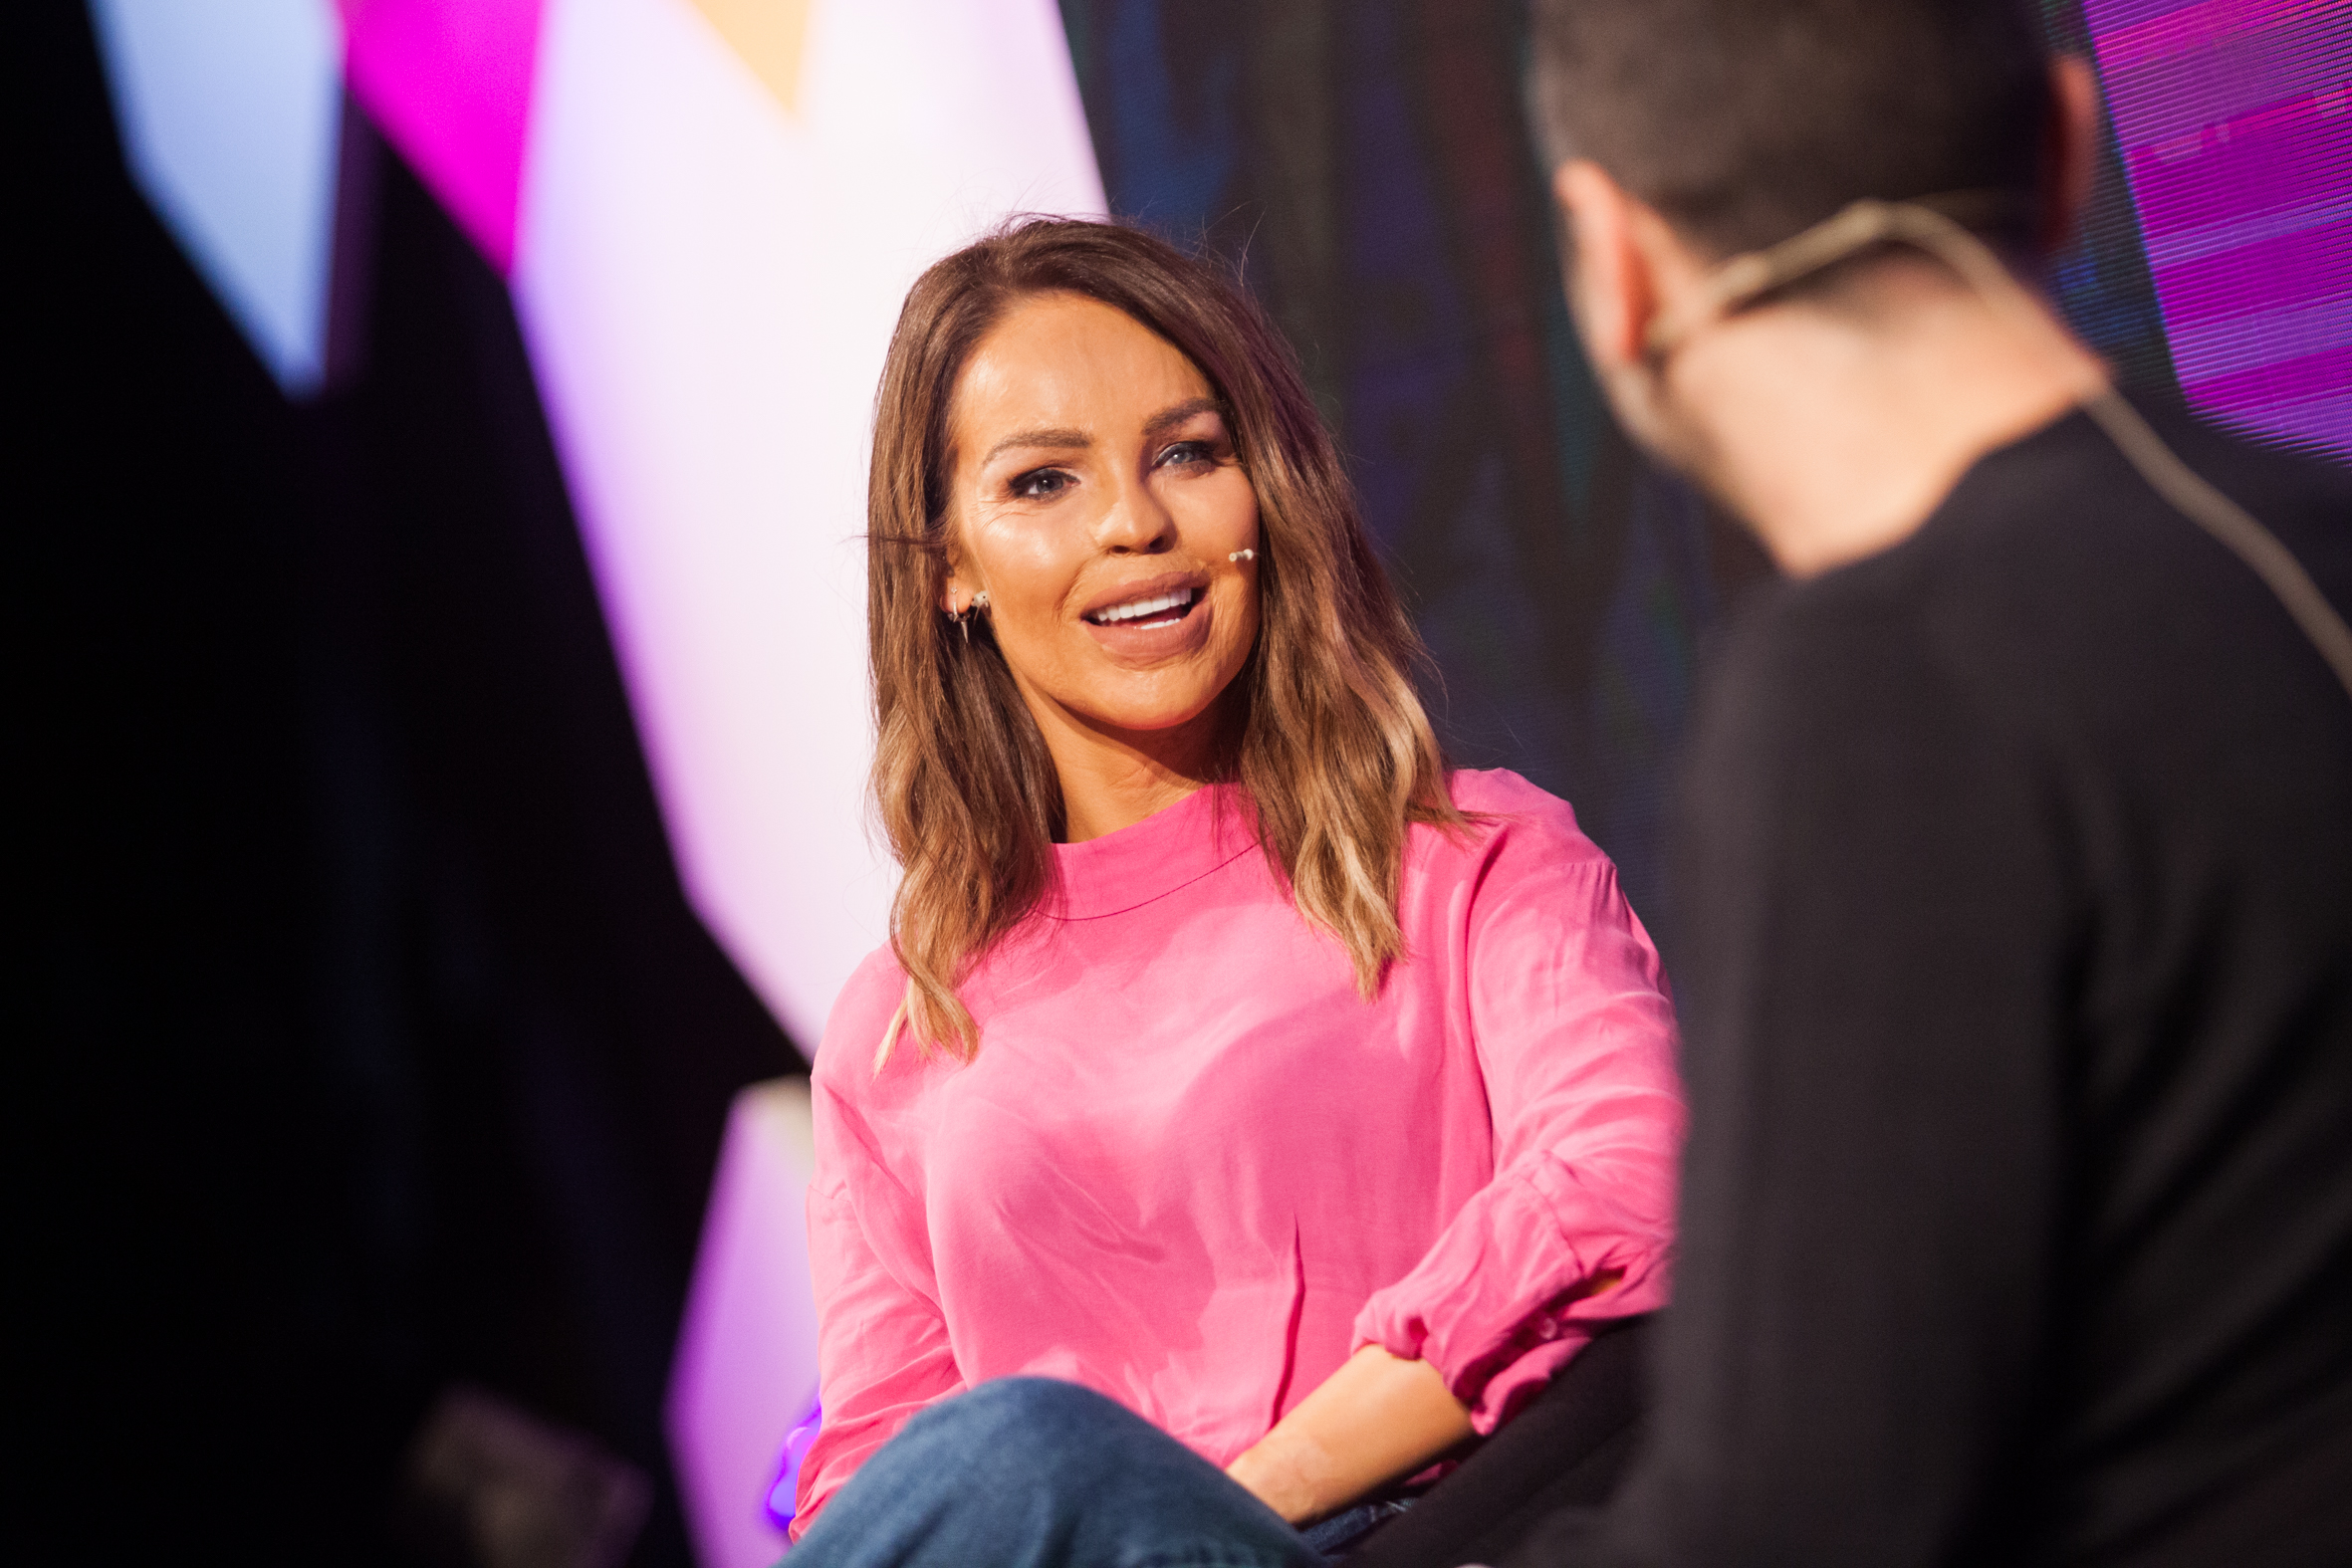 Katie Piper & panel at MAD//Fest conference